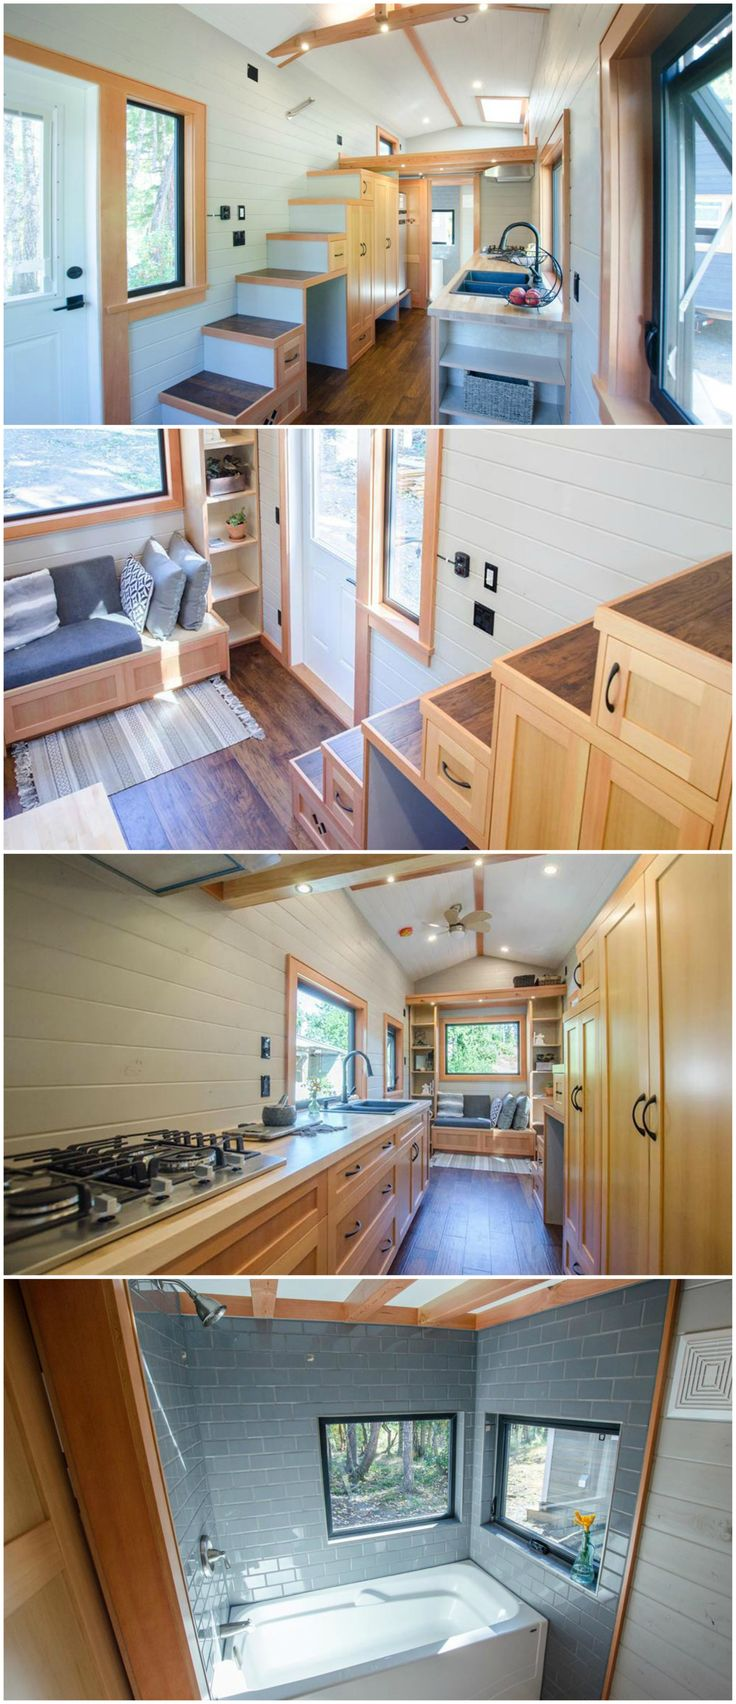 The Kestrel is a wonderful tiny house built by Rewild Homes.  The 24′ tiny house features living room with built-in bench seat and custom storage surrounding it. To the left is a large set of storage stairs that leads up to the bedroom loft, which has a venting skylight.  The kitchen includes hand-built birch cabinetry with soft-close drawers and cupboards, two large pantries under the storage stairs, a gas cooktop, and an apartment size refrigerator.